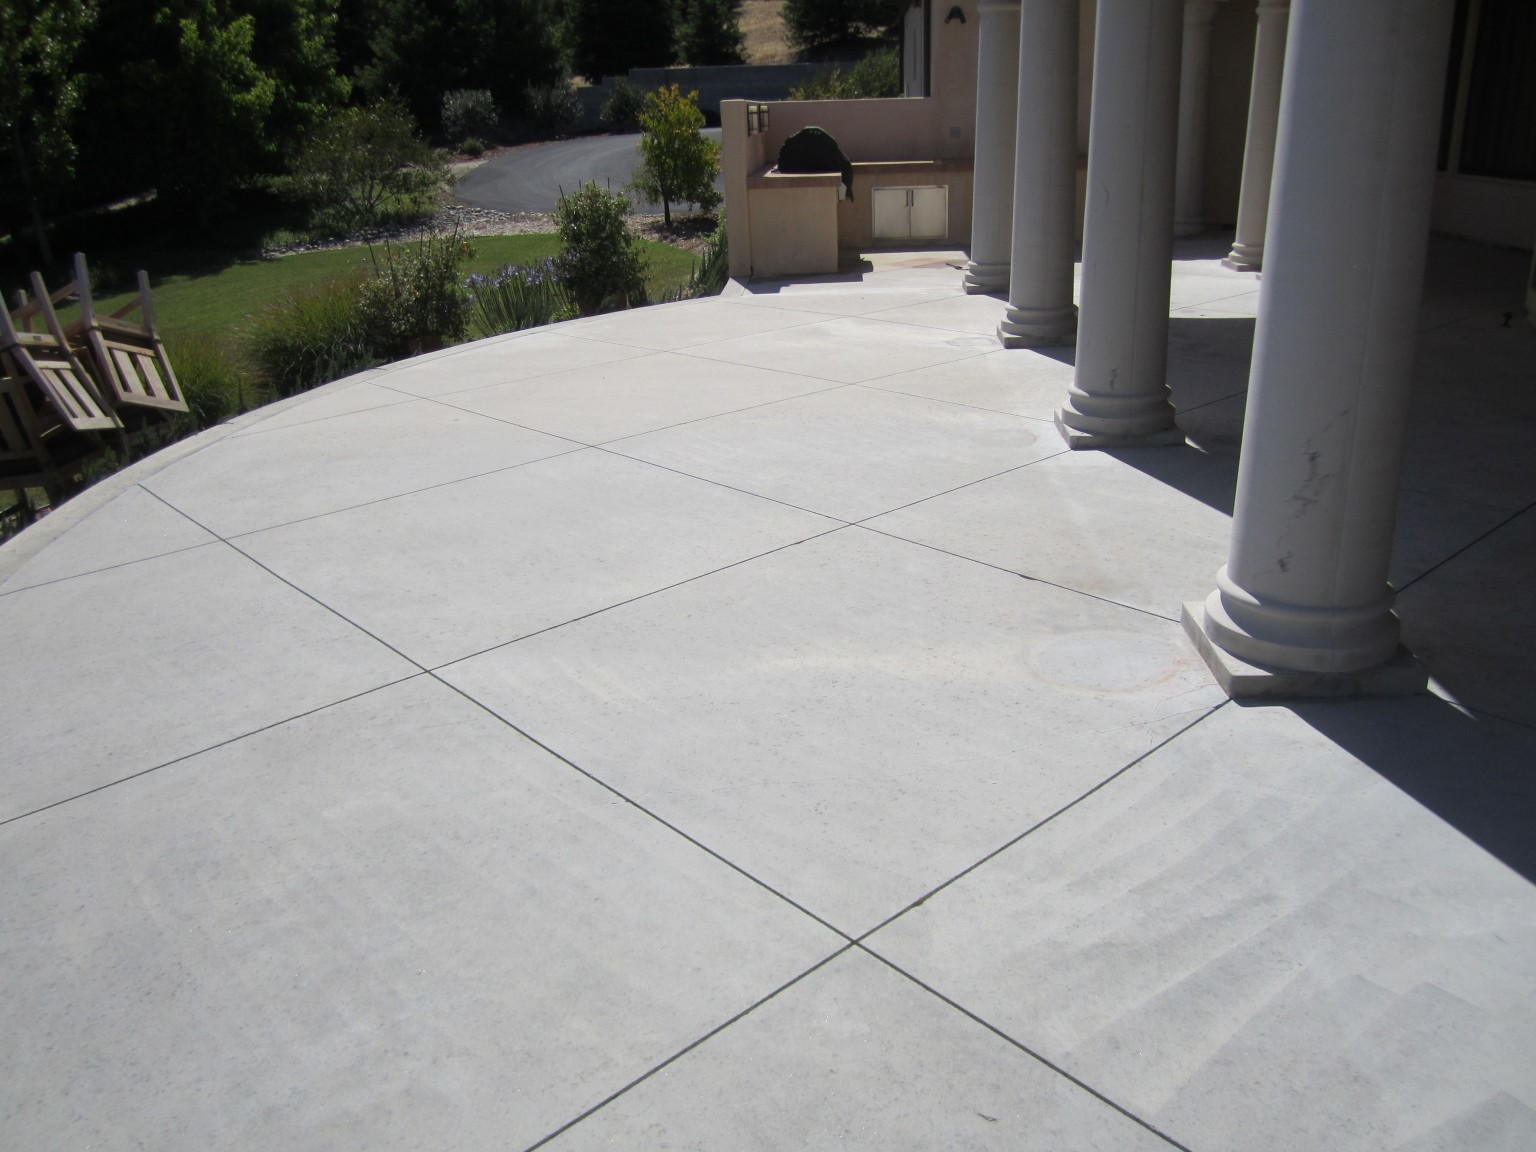 Fullsize Of Stained Concrete Patio Large Of Stained Concrete Patio ...